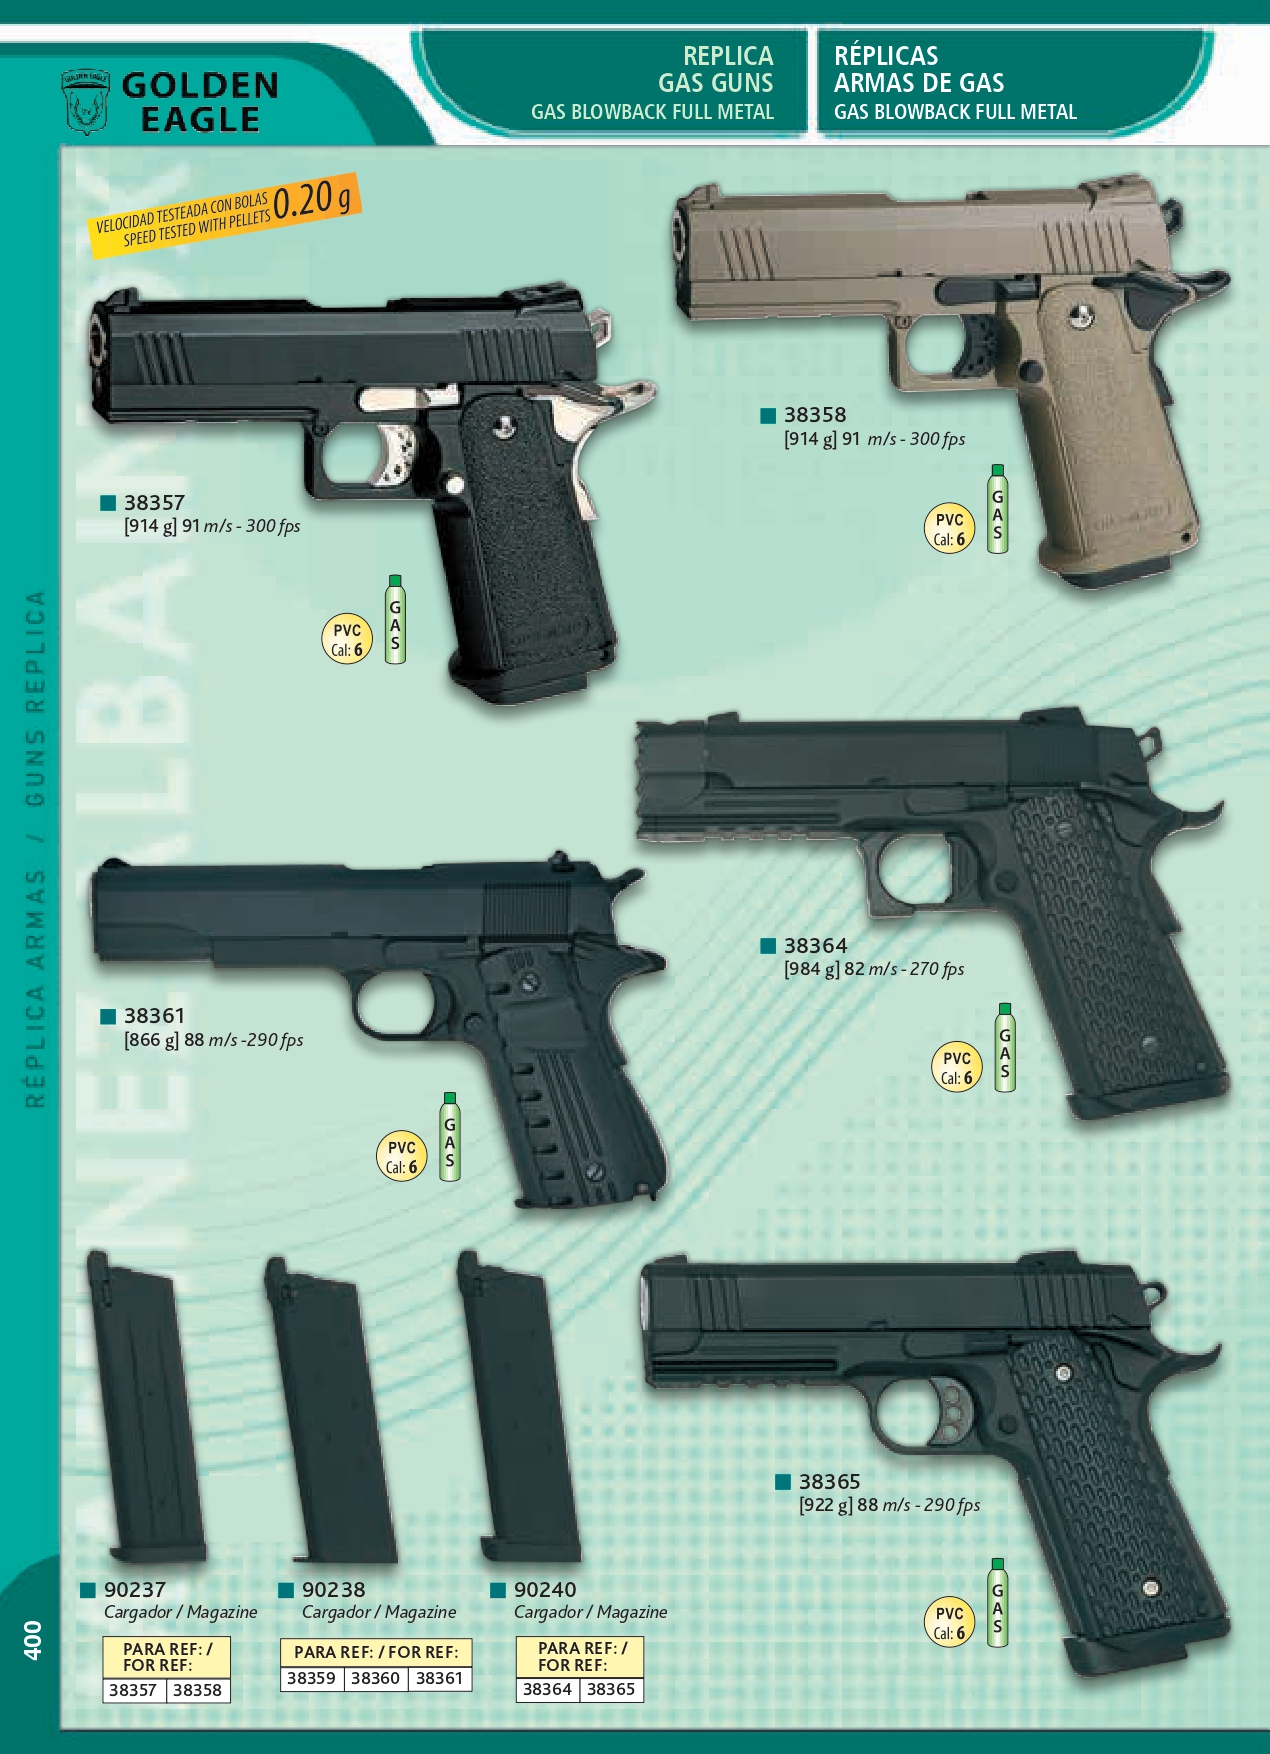 REPLICAS DE ARMAS - Golden Eagle